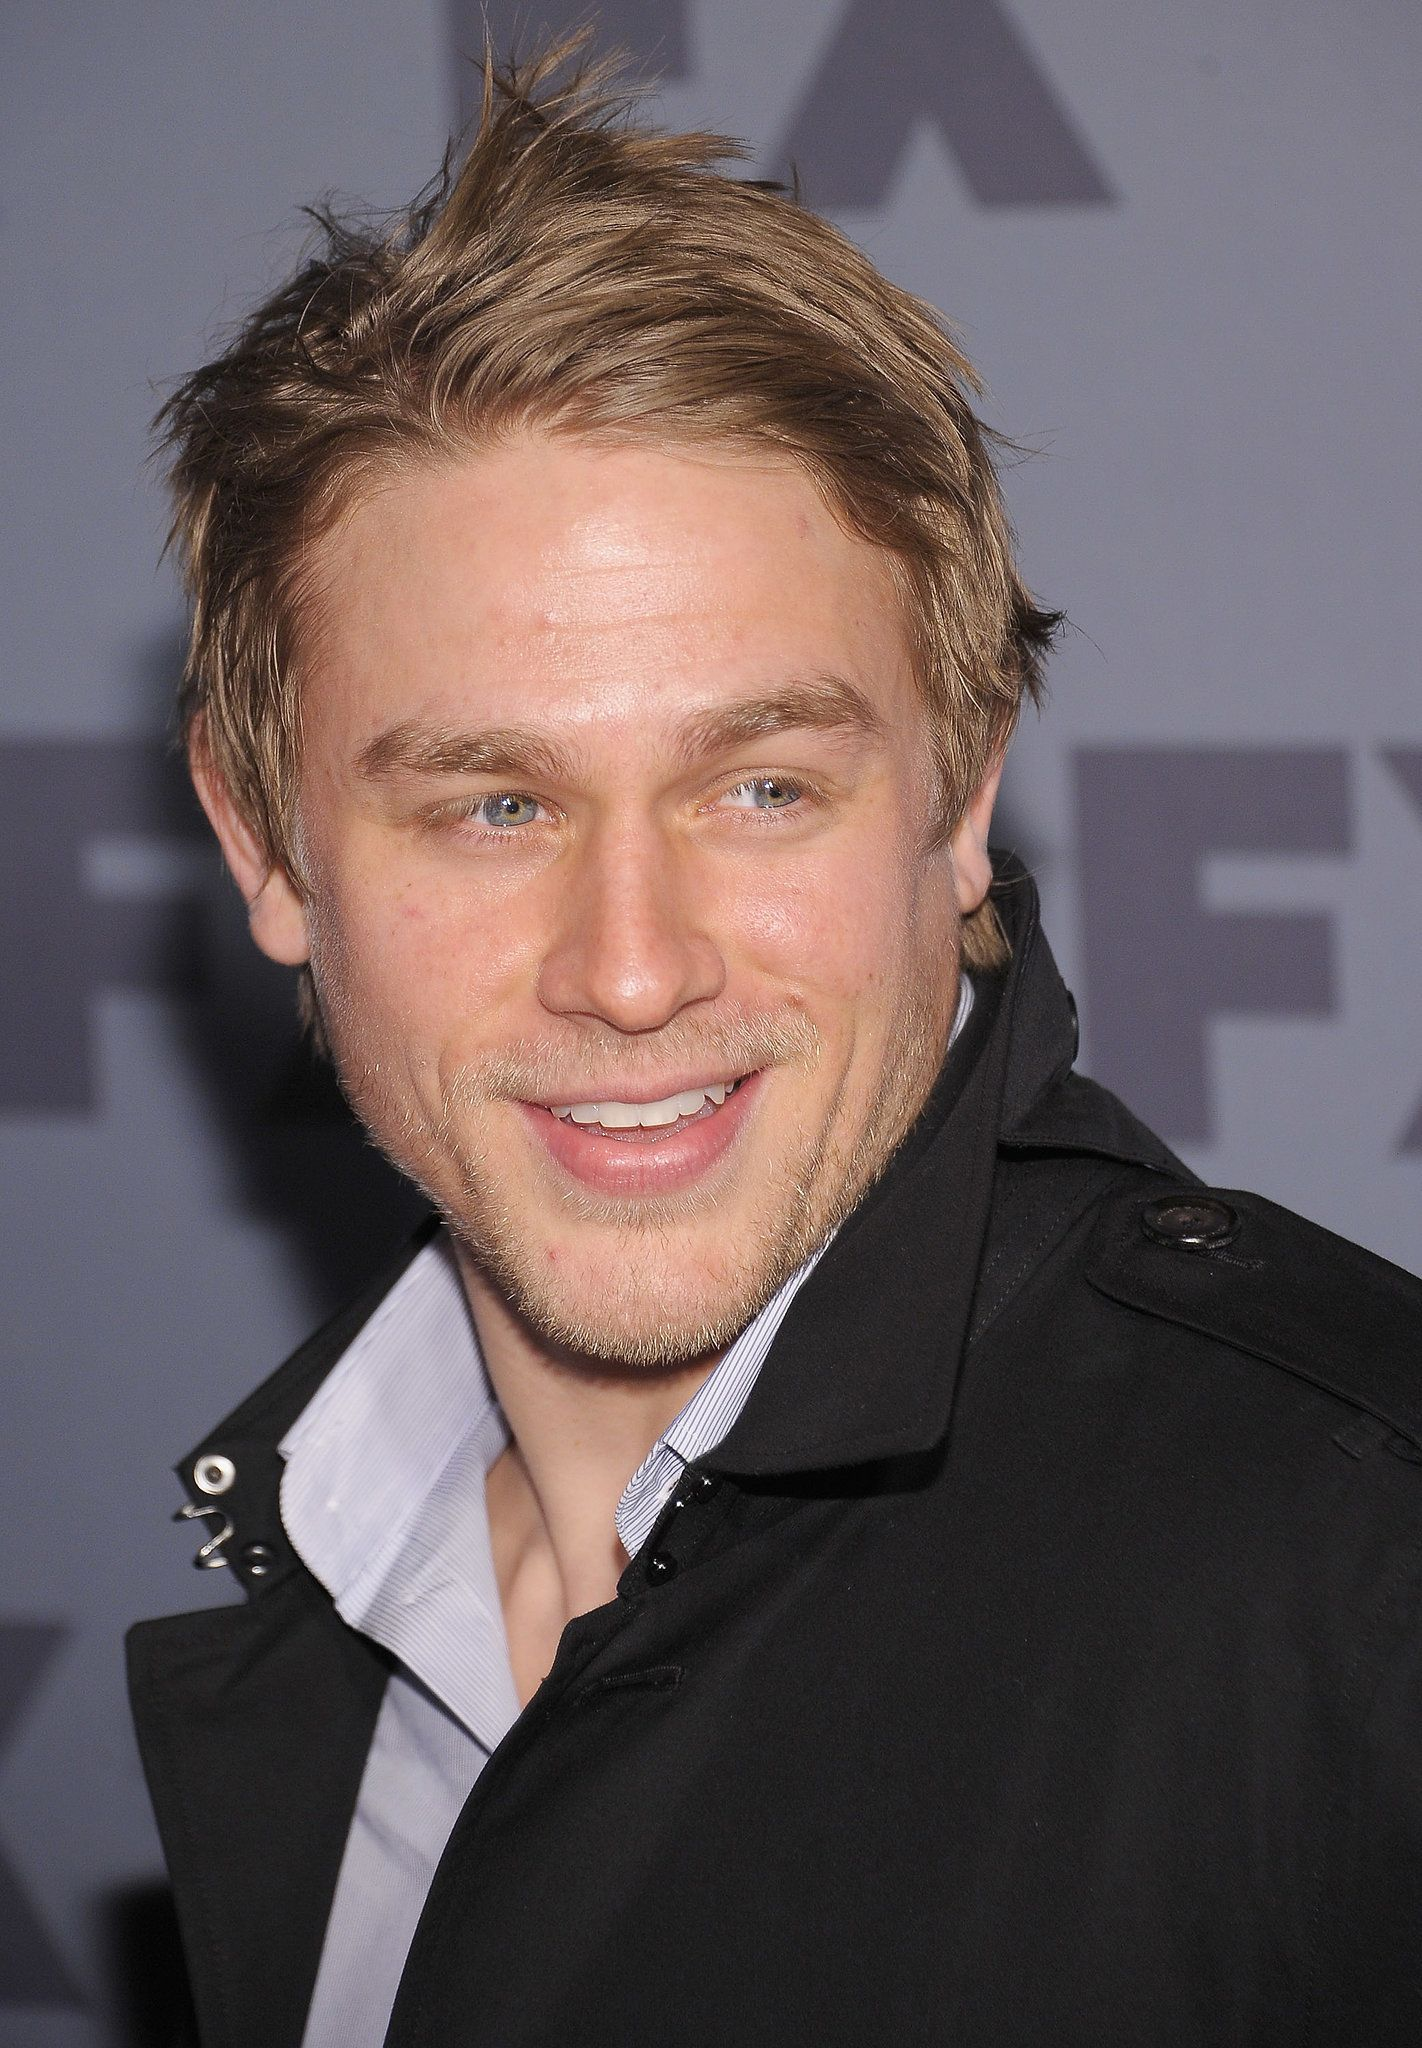 When he was young and shorthaired charlie hunnam